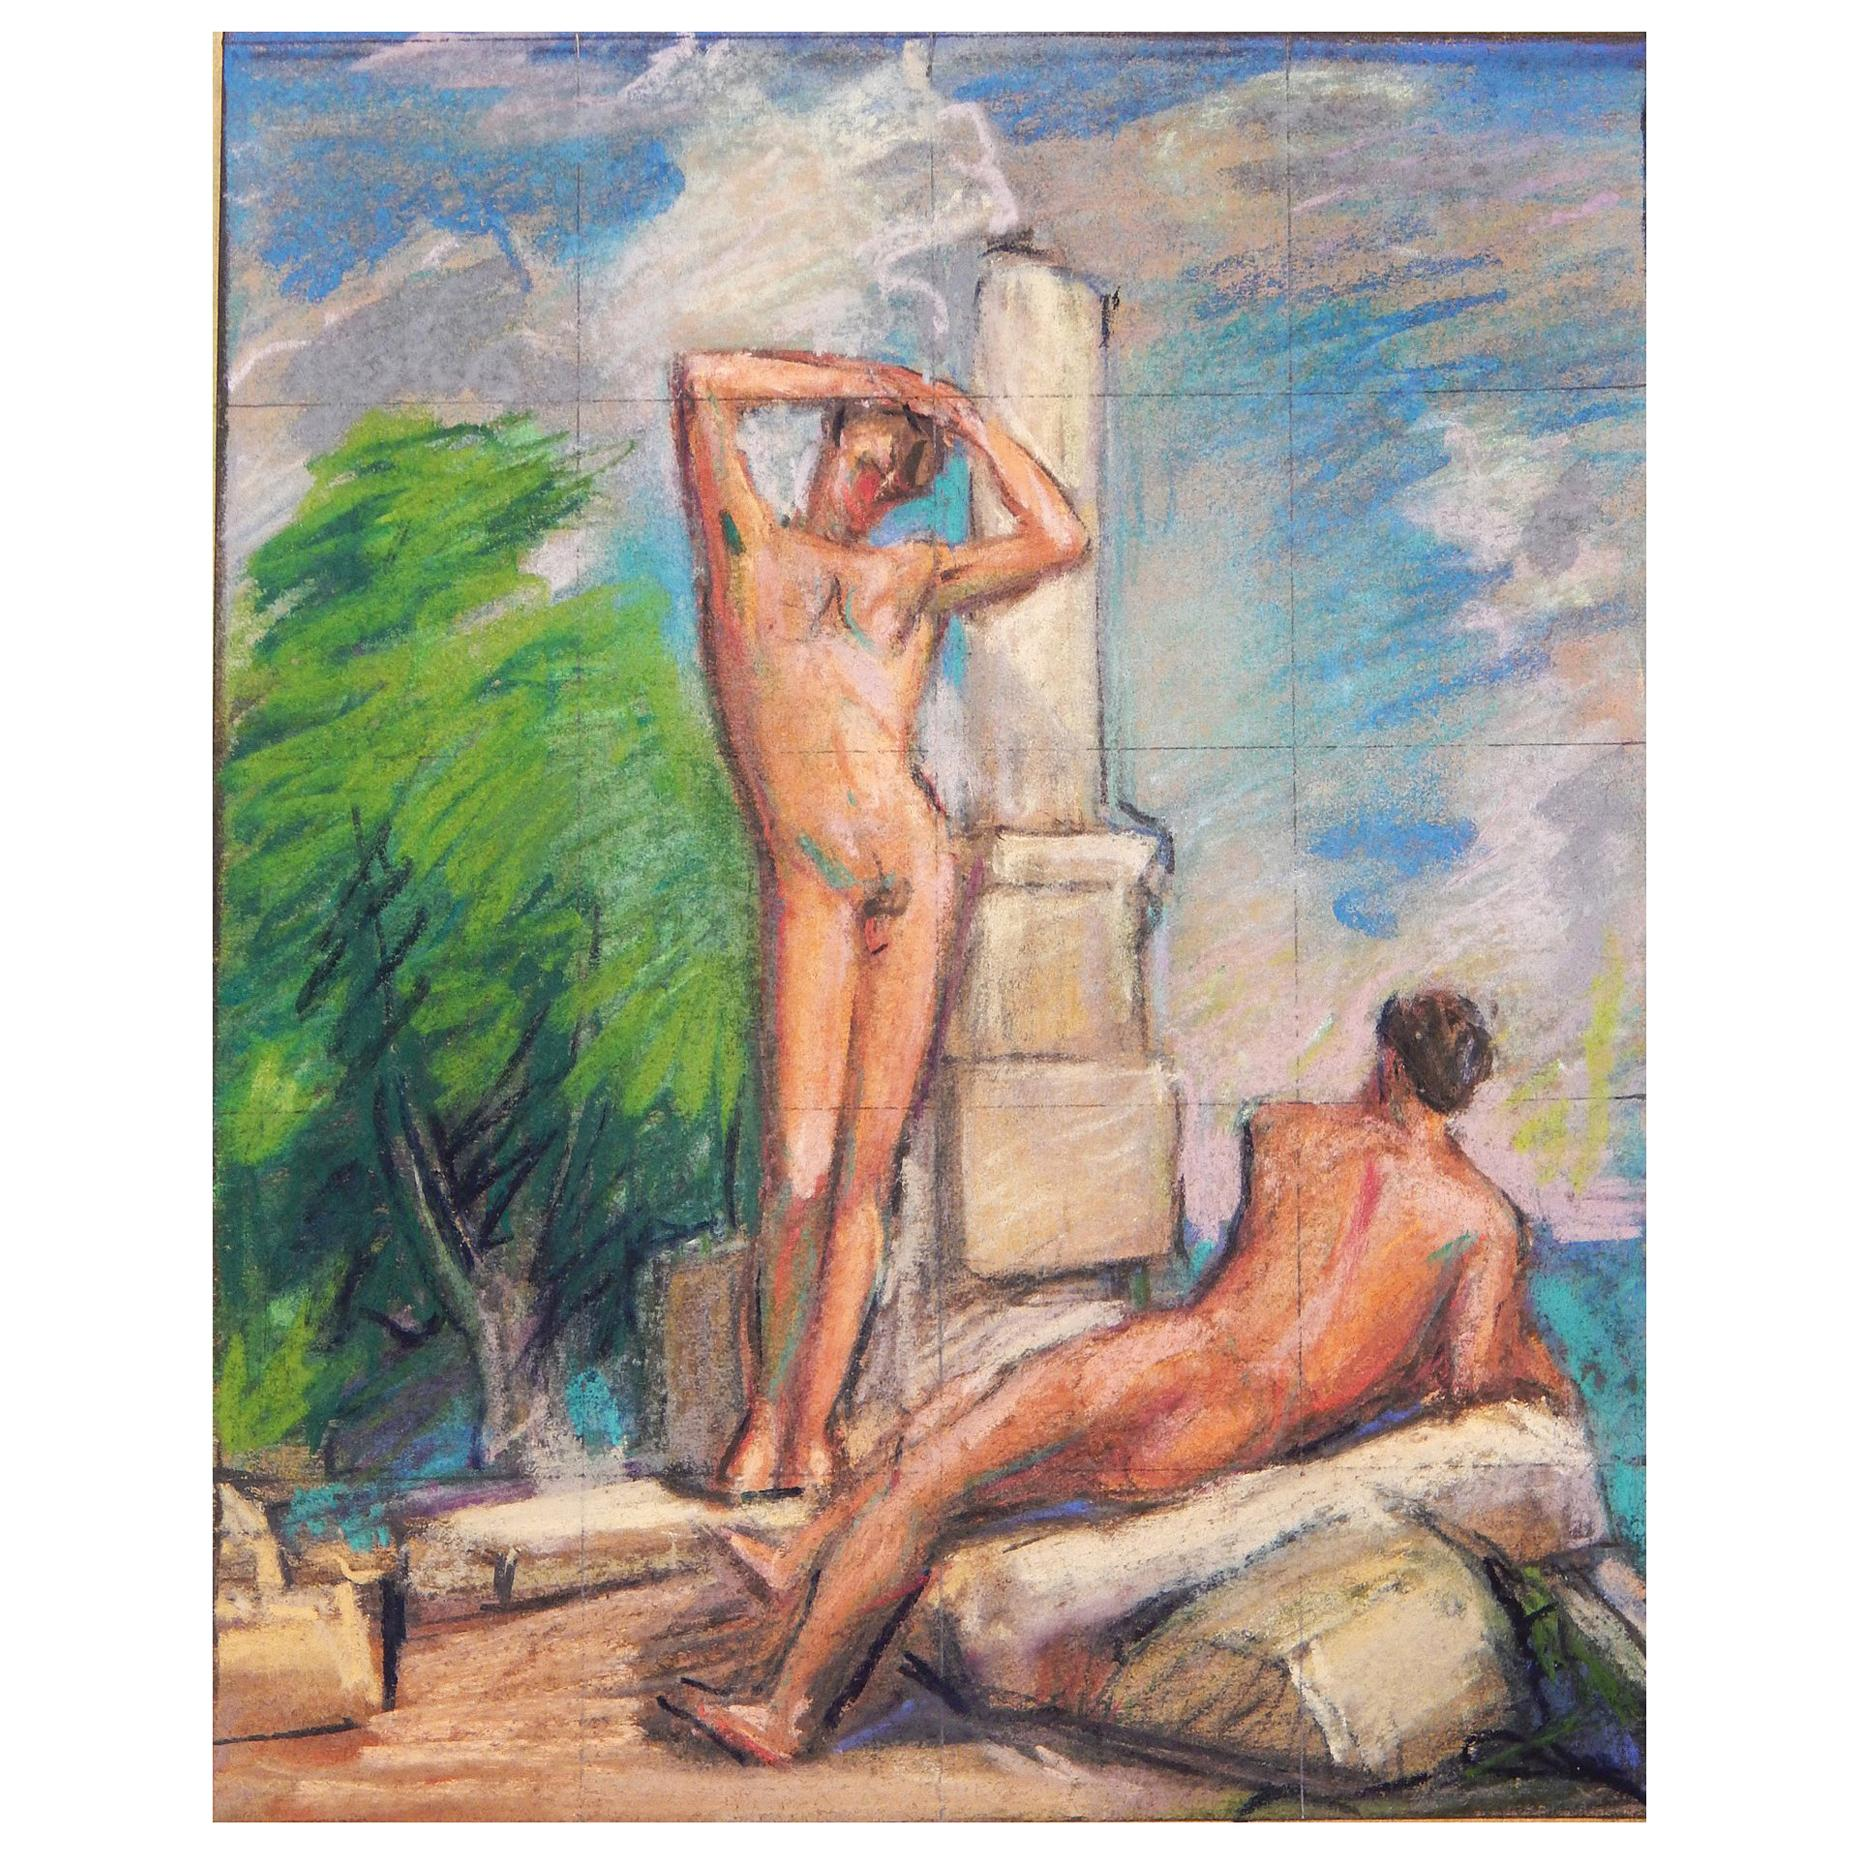 """""""Nudes Among the Ruins,"""" Vivid Mural Study with Male Nudes by Allyn Cox"""